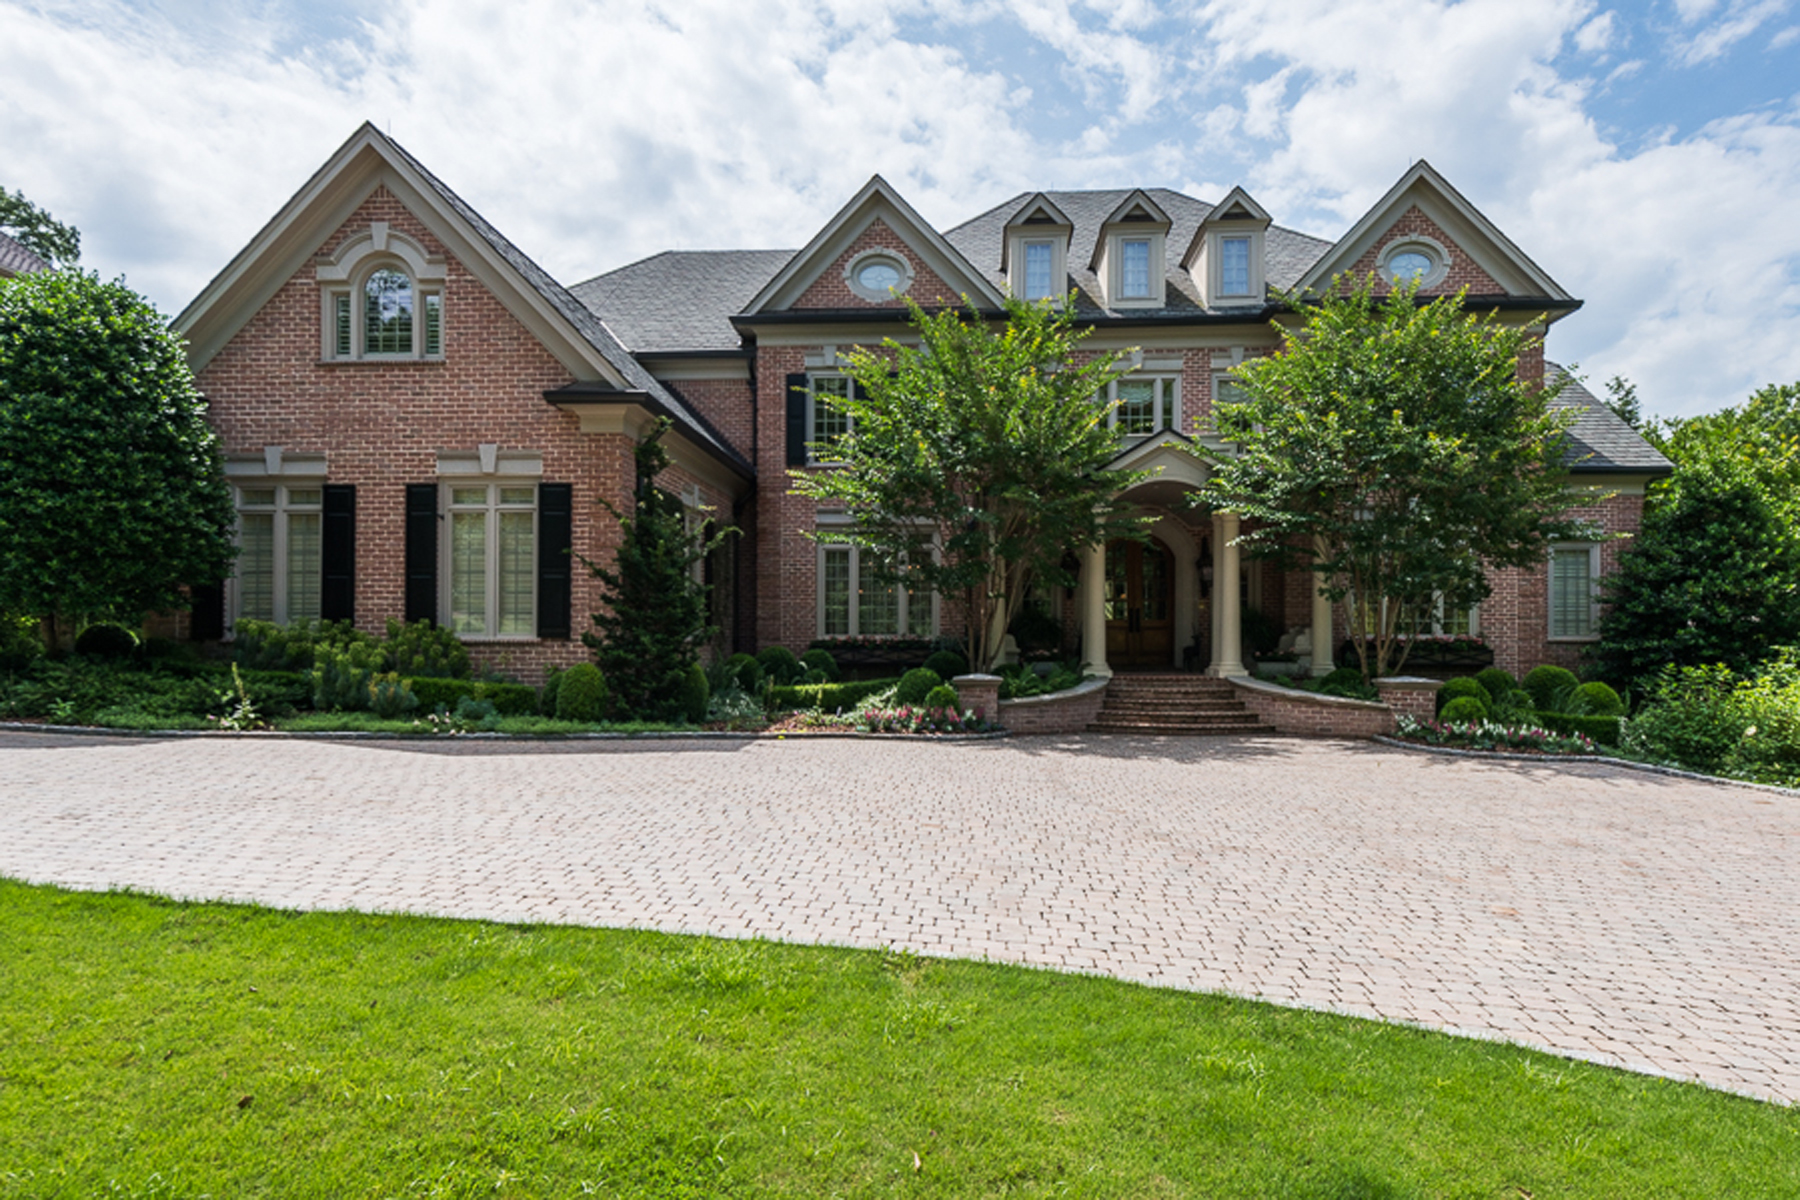 단독 가정 주택 용 매매 에 A Masterpiece In Johns Creek Most Prestigious Gated Golf Community 490 Covington Cove Alpharetta, 조지아 30022 미국